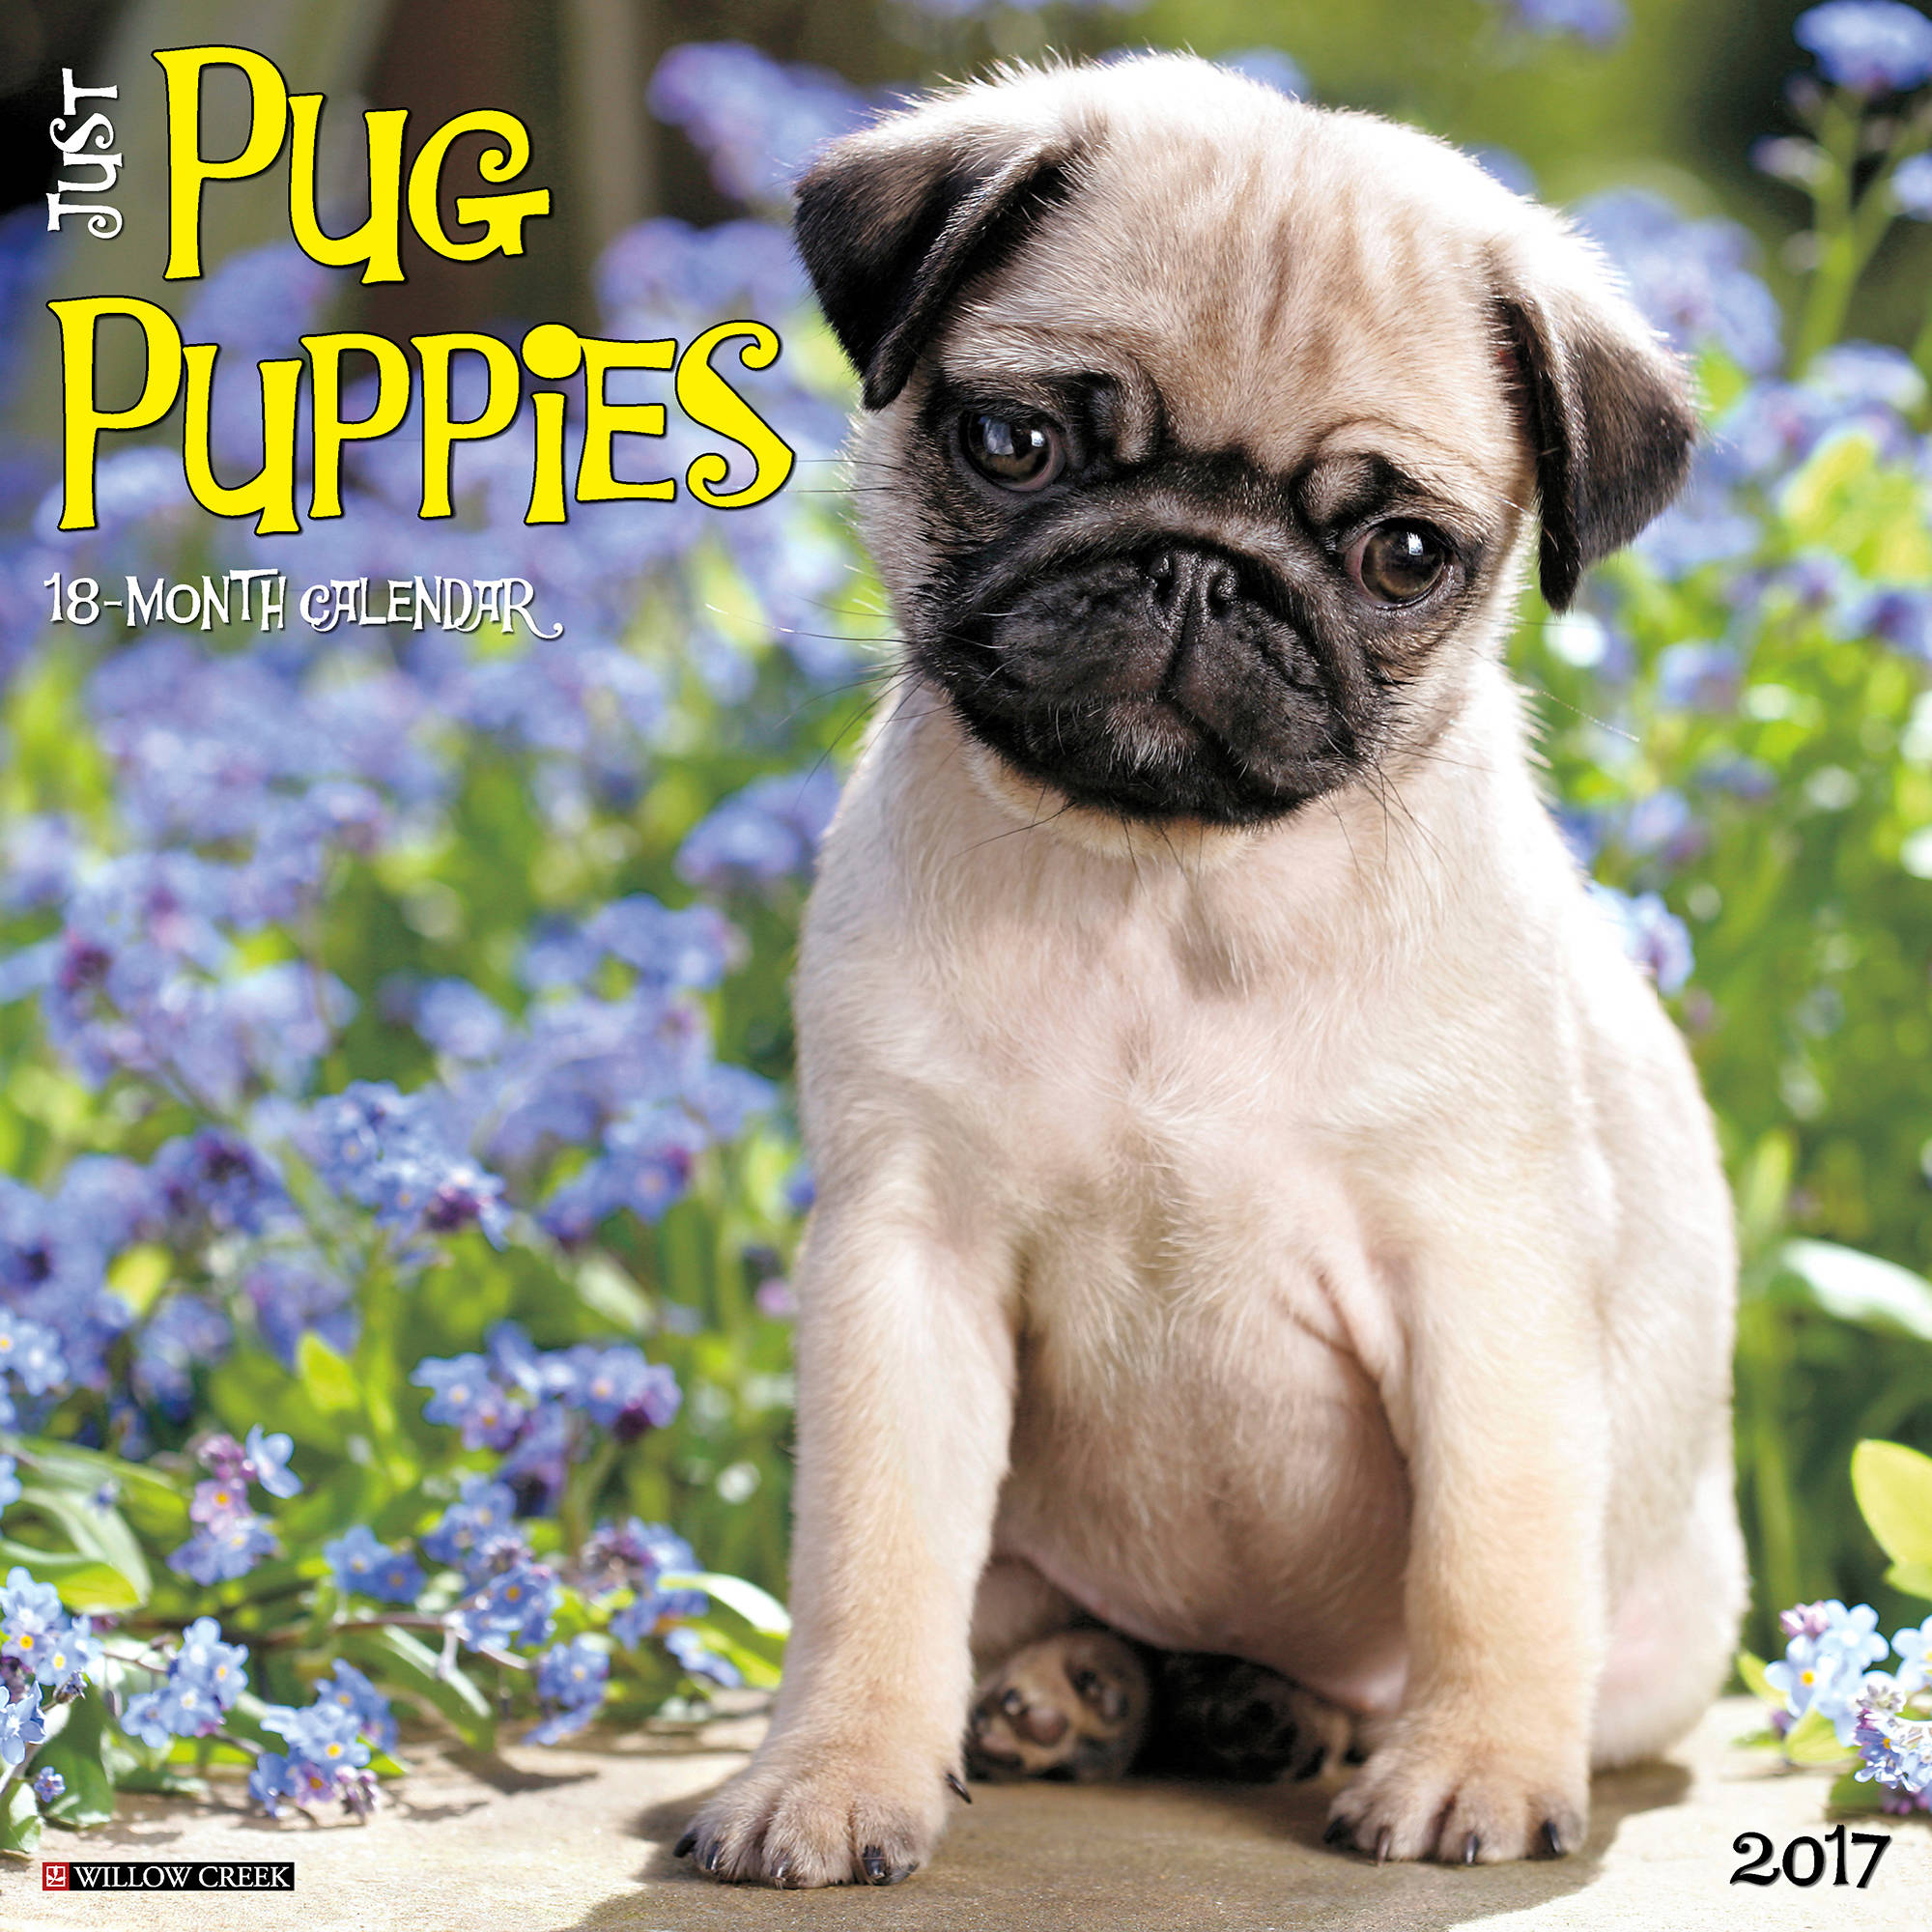 2017 Just Pug Puppies Wall Calendar